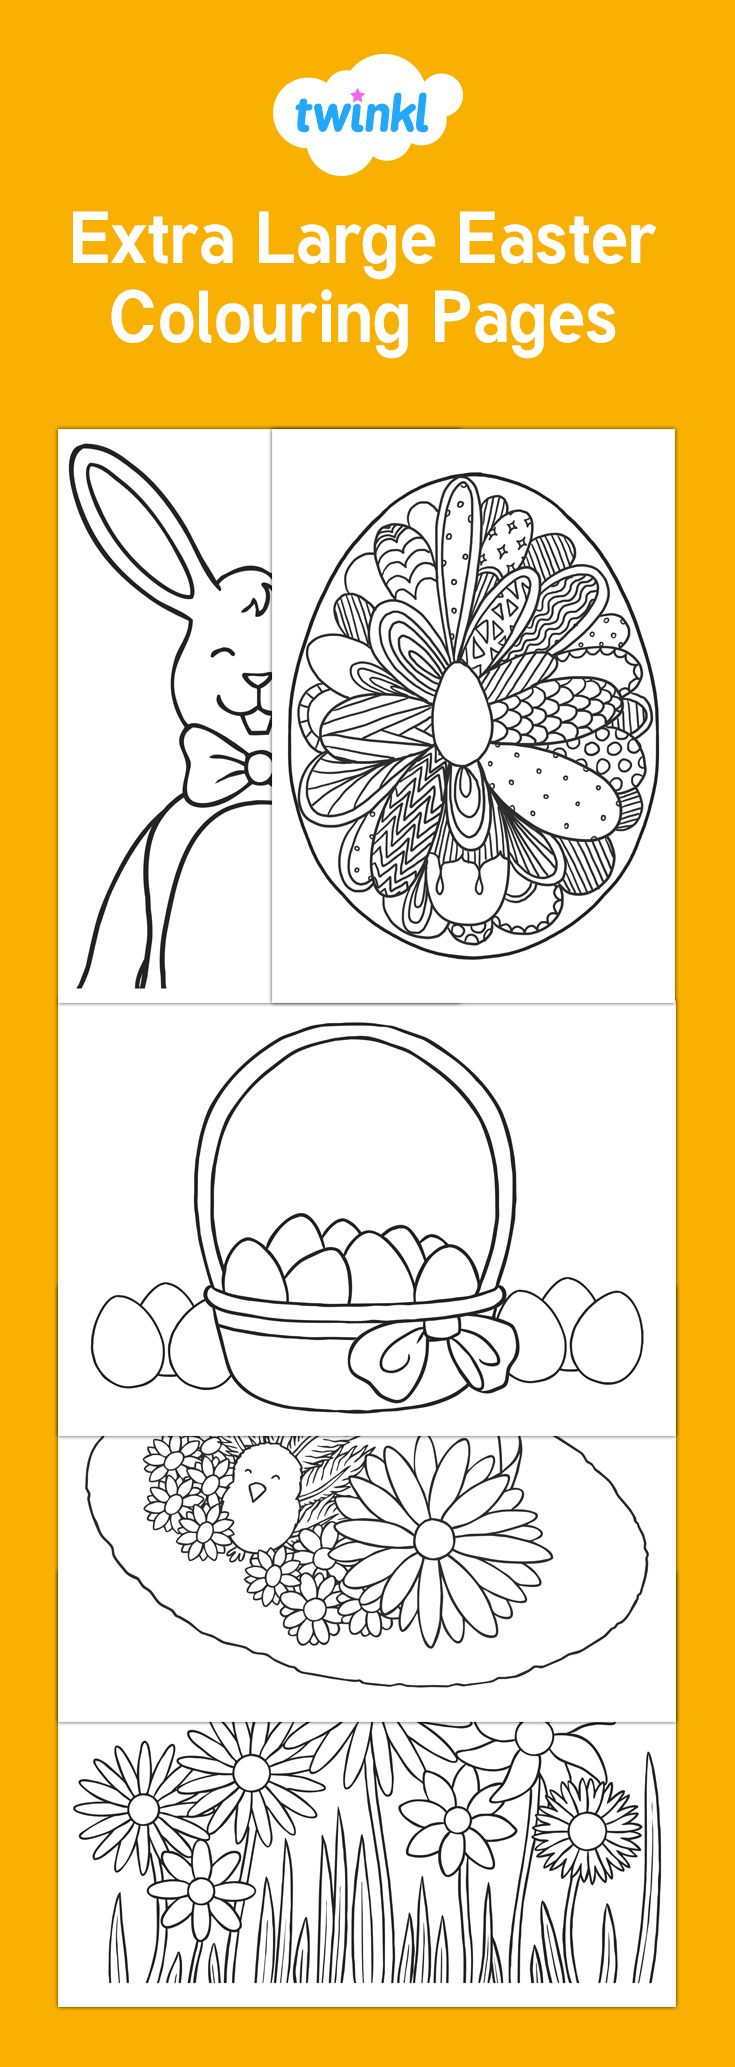 Christmas colouring in sheets twinkl - Extra Large Easter Colouring Pages